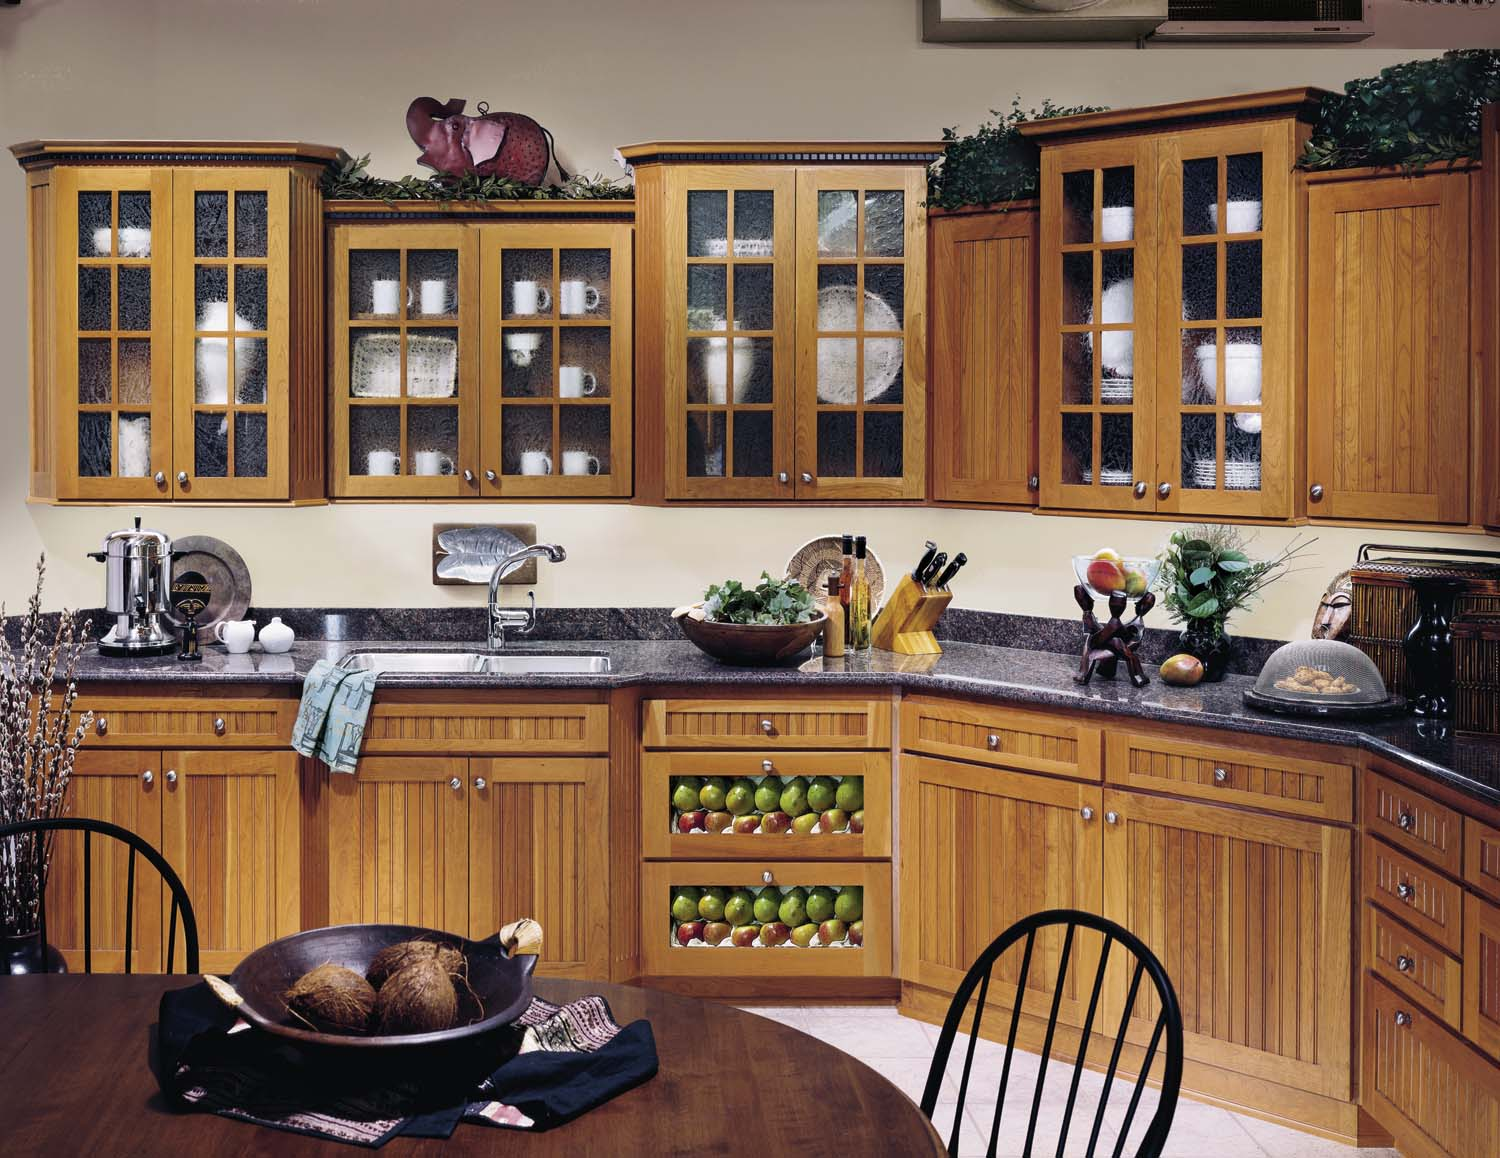 1000 options in kitchen cabinets how to choose best for for Kitchen cabinet styles